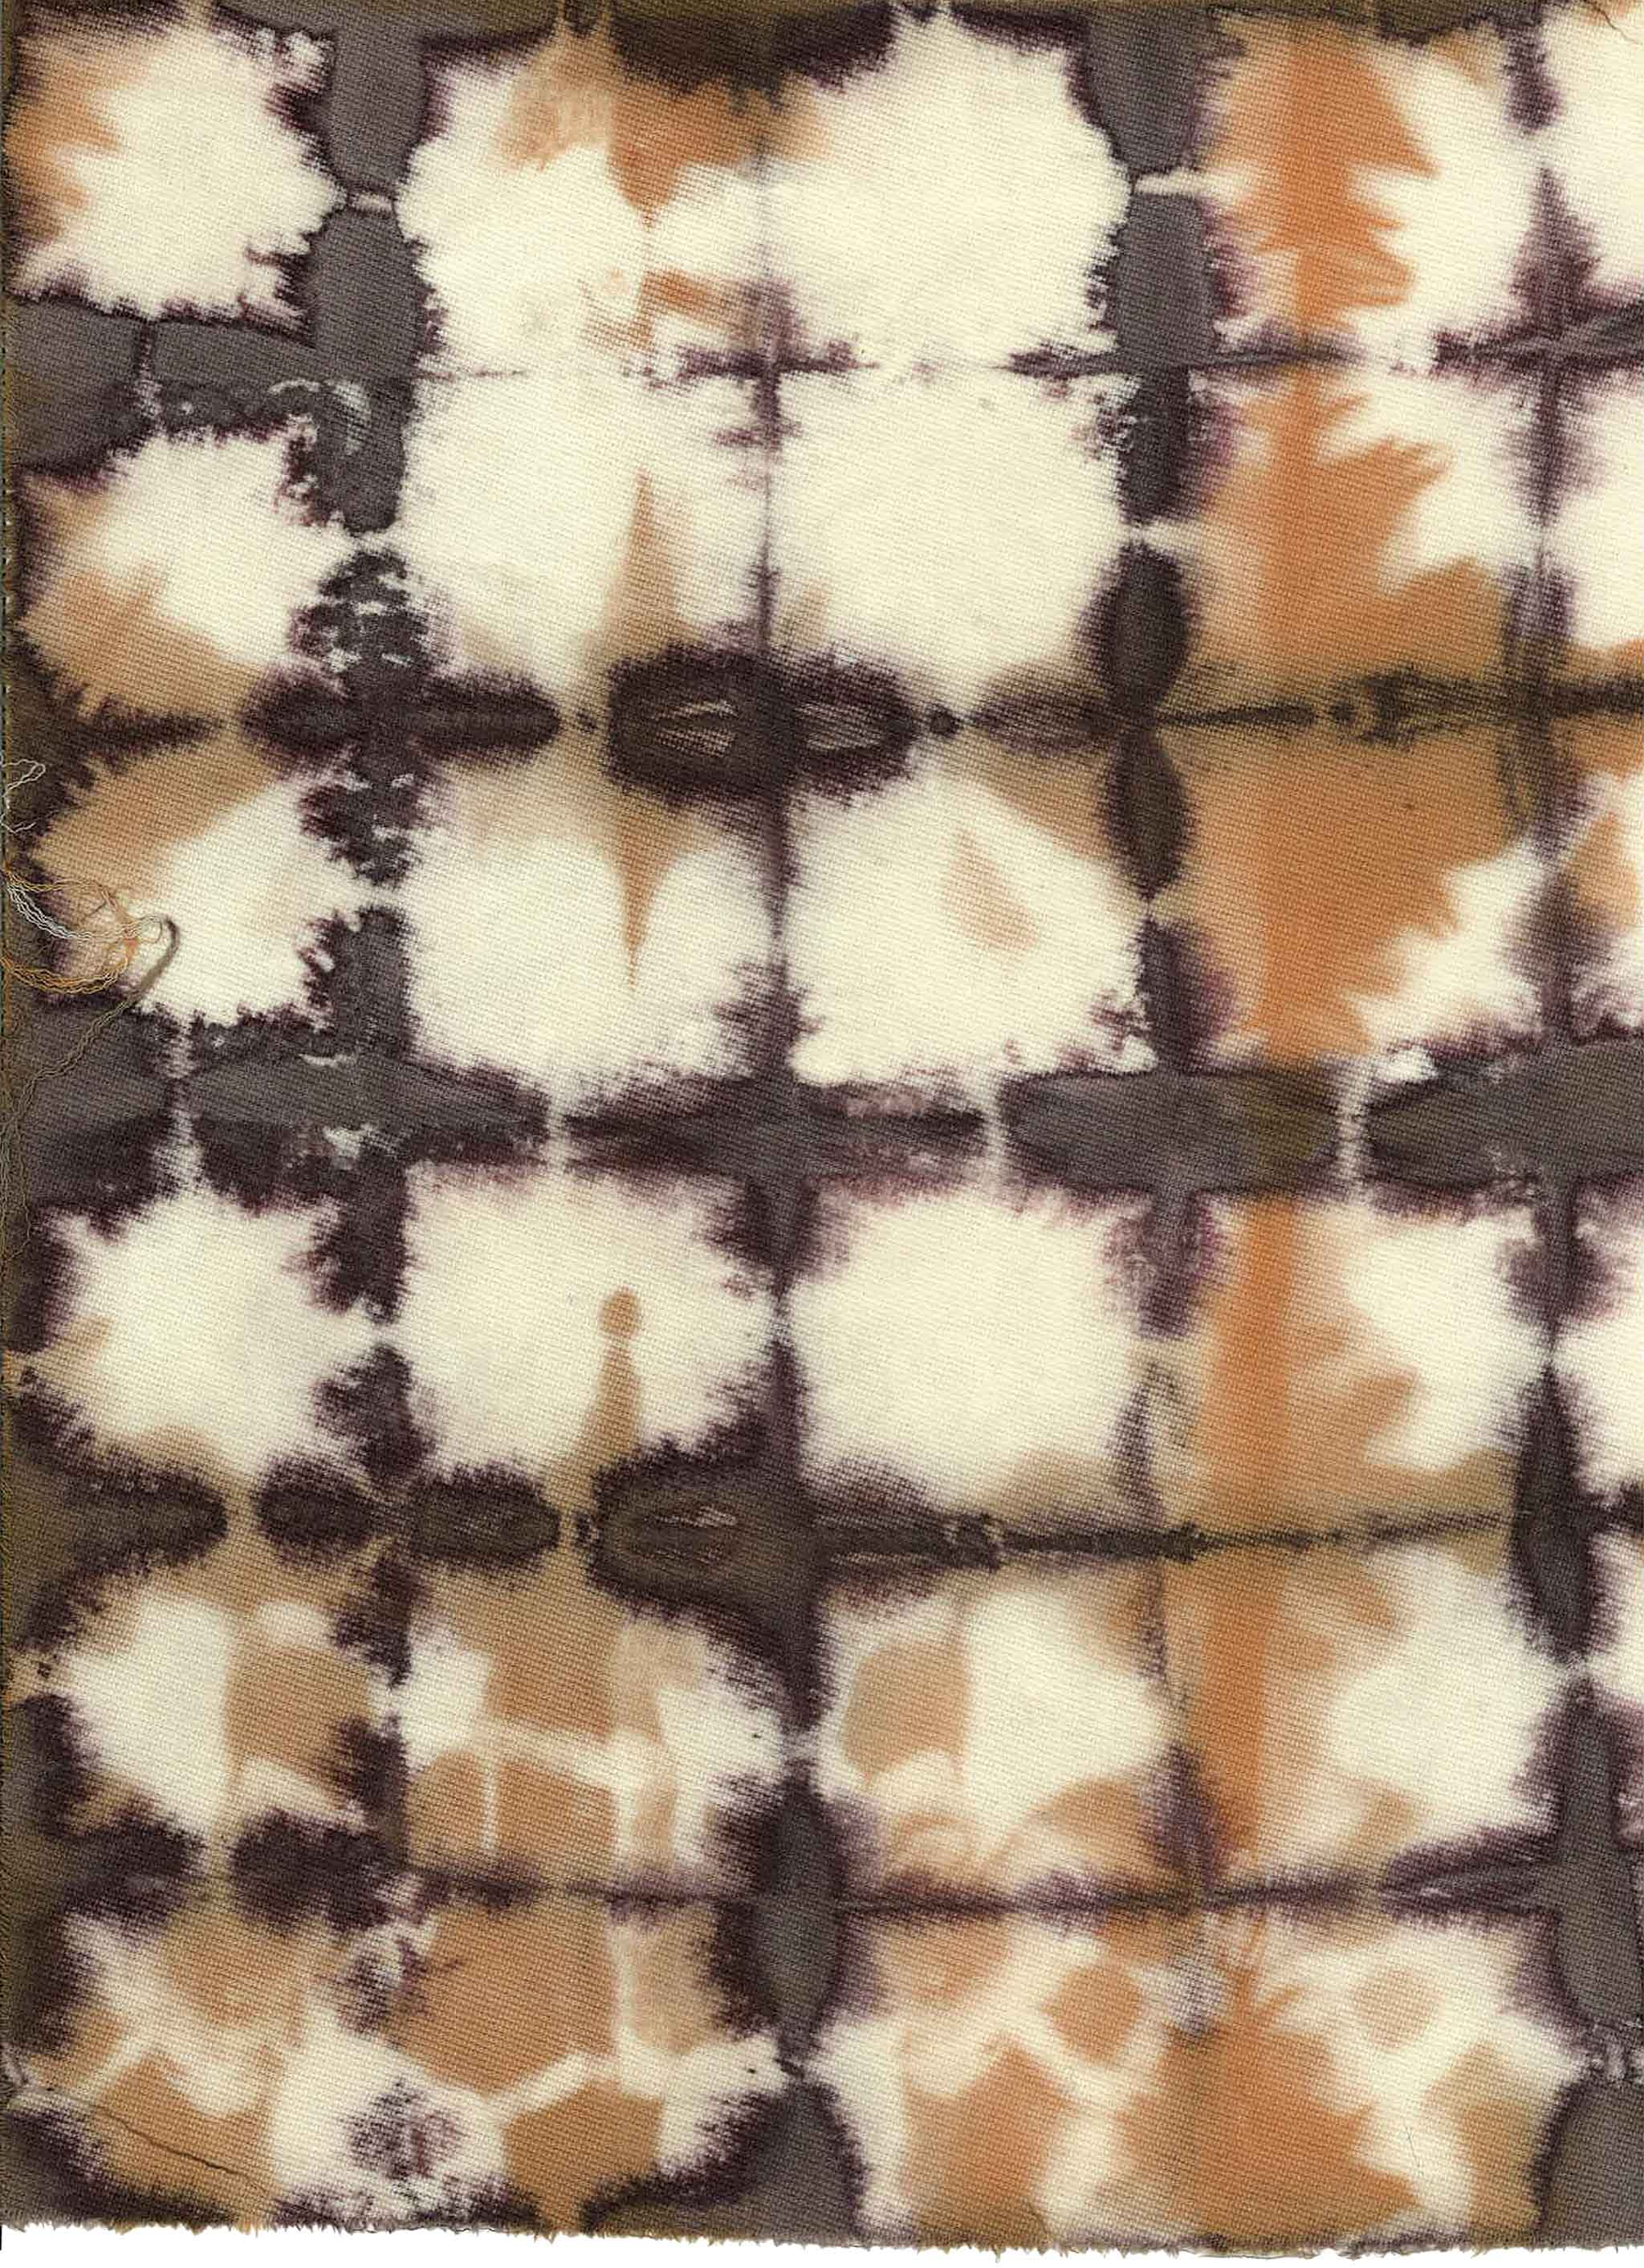 Scan of a piece of dyed/stained cotton made by Michael Christie (The Ruggist) during the Natural Dyes Art Day at Creative Matters. This piece went on to inspire the carpet 'Ichiban' which debuts at The Rug Show at Javits, 10-13 September, 2017. | Scan courtesy of Creative Matters.